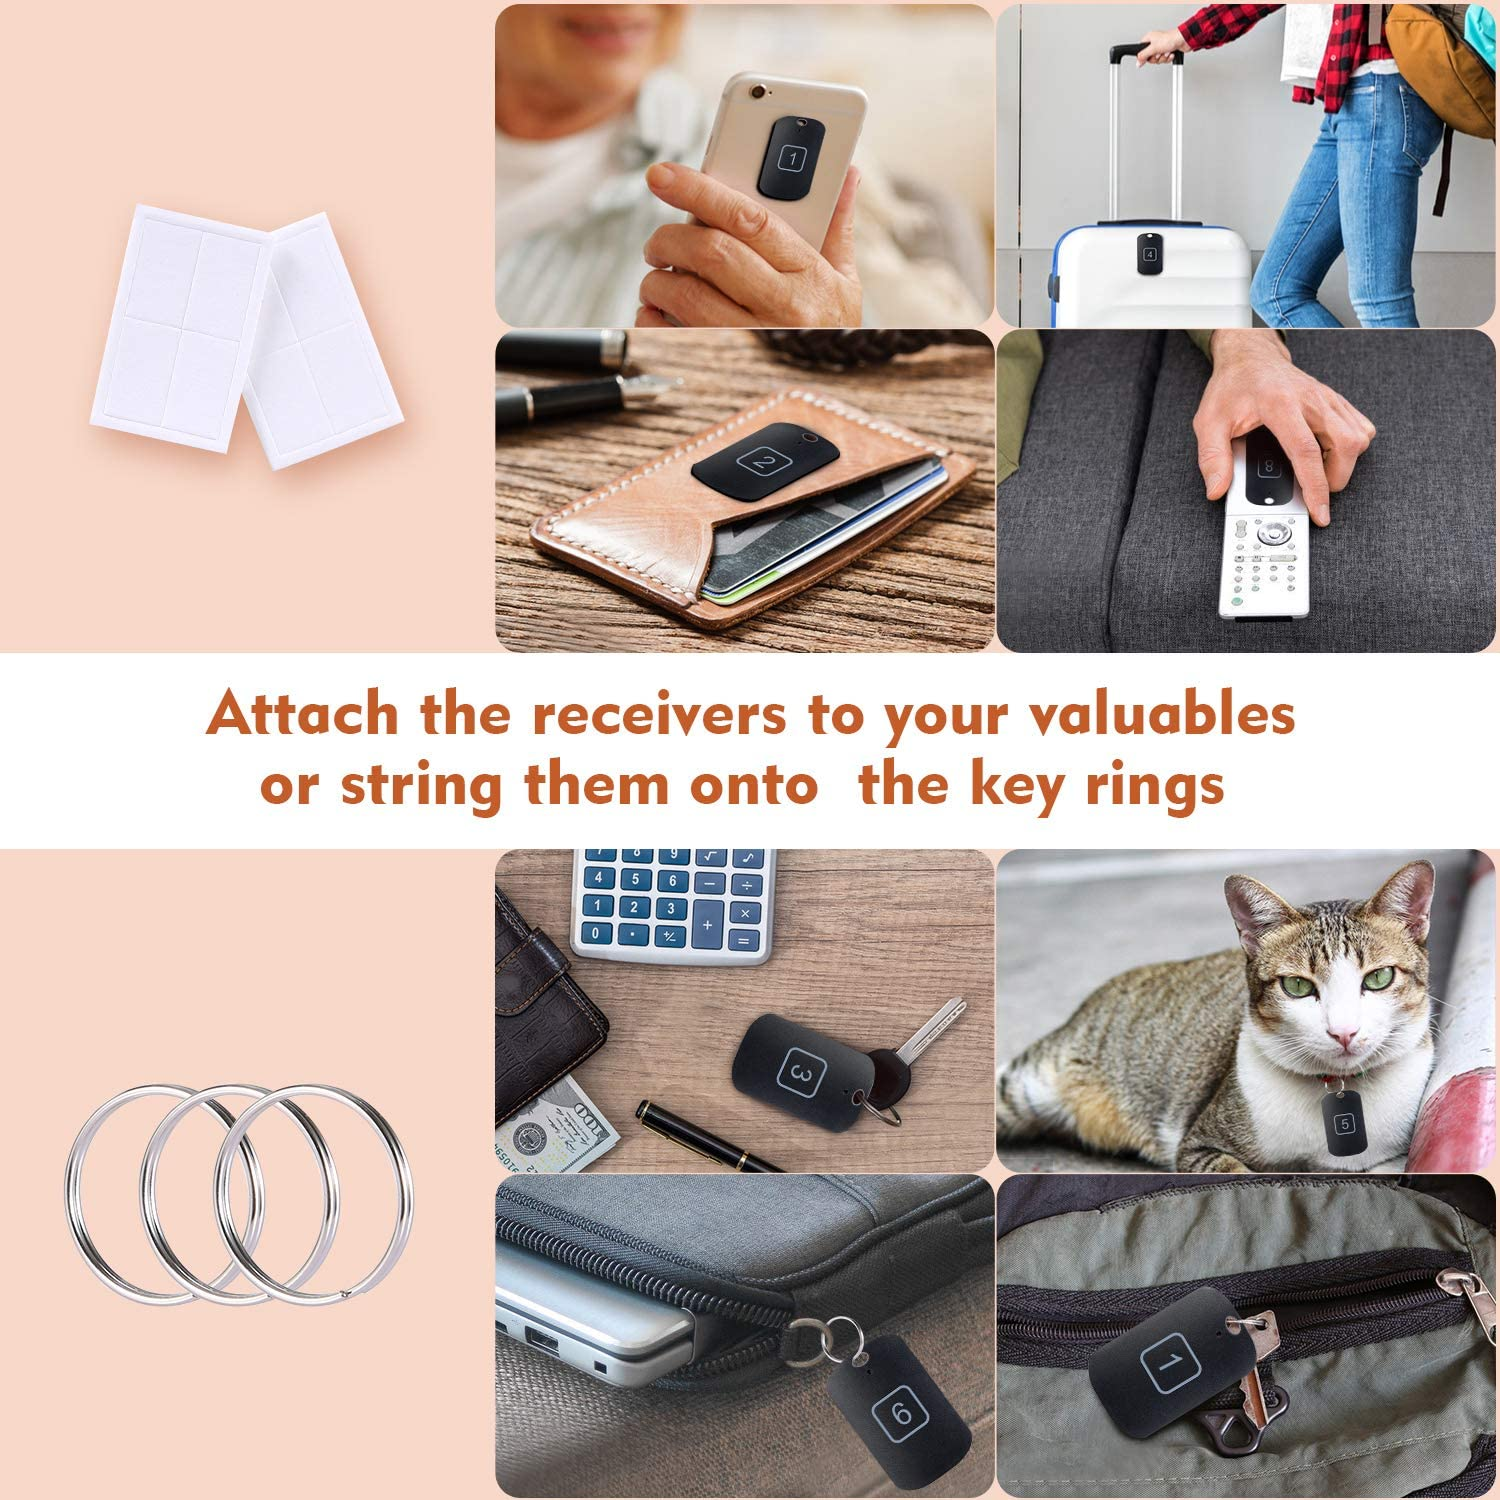 Black Key Finder RF Item Locator with 1 Transmitter with 8 Receivers Wallet and Key Wireless Item Tracker with 100ft Working Range,RF Finder Locator for Pet 8 Receivers